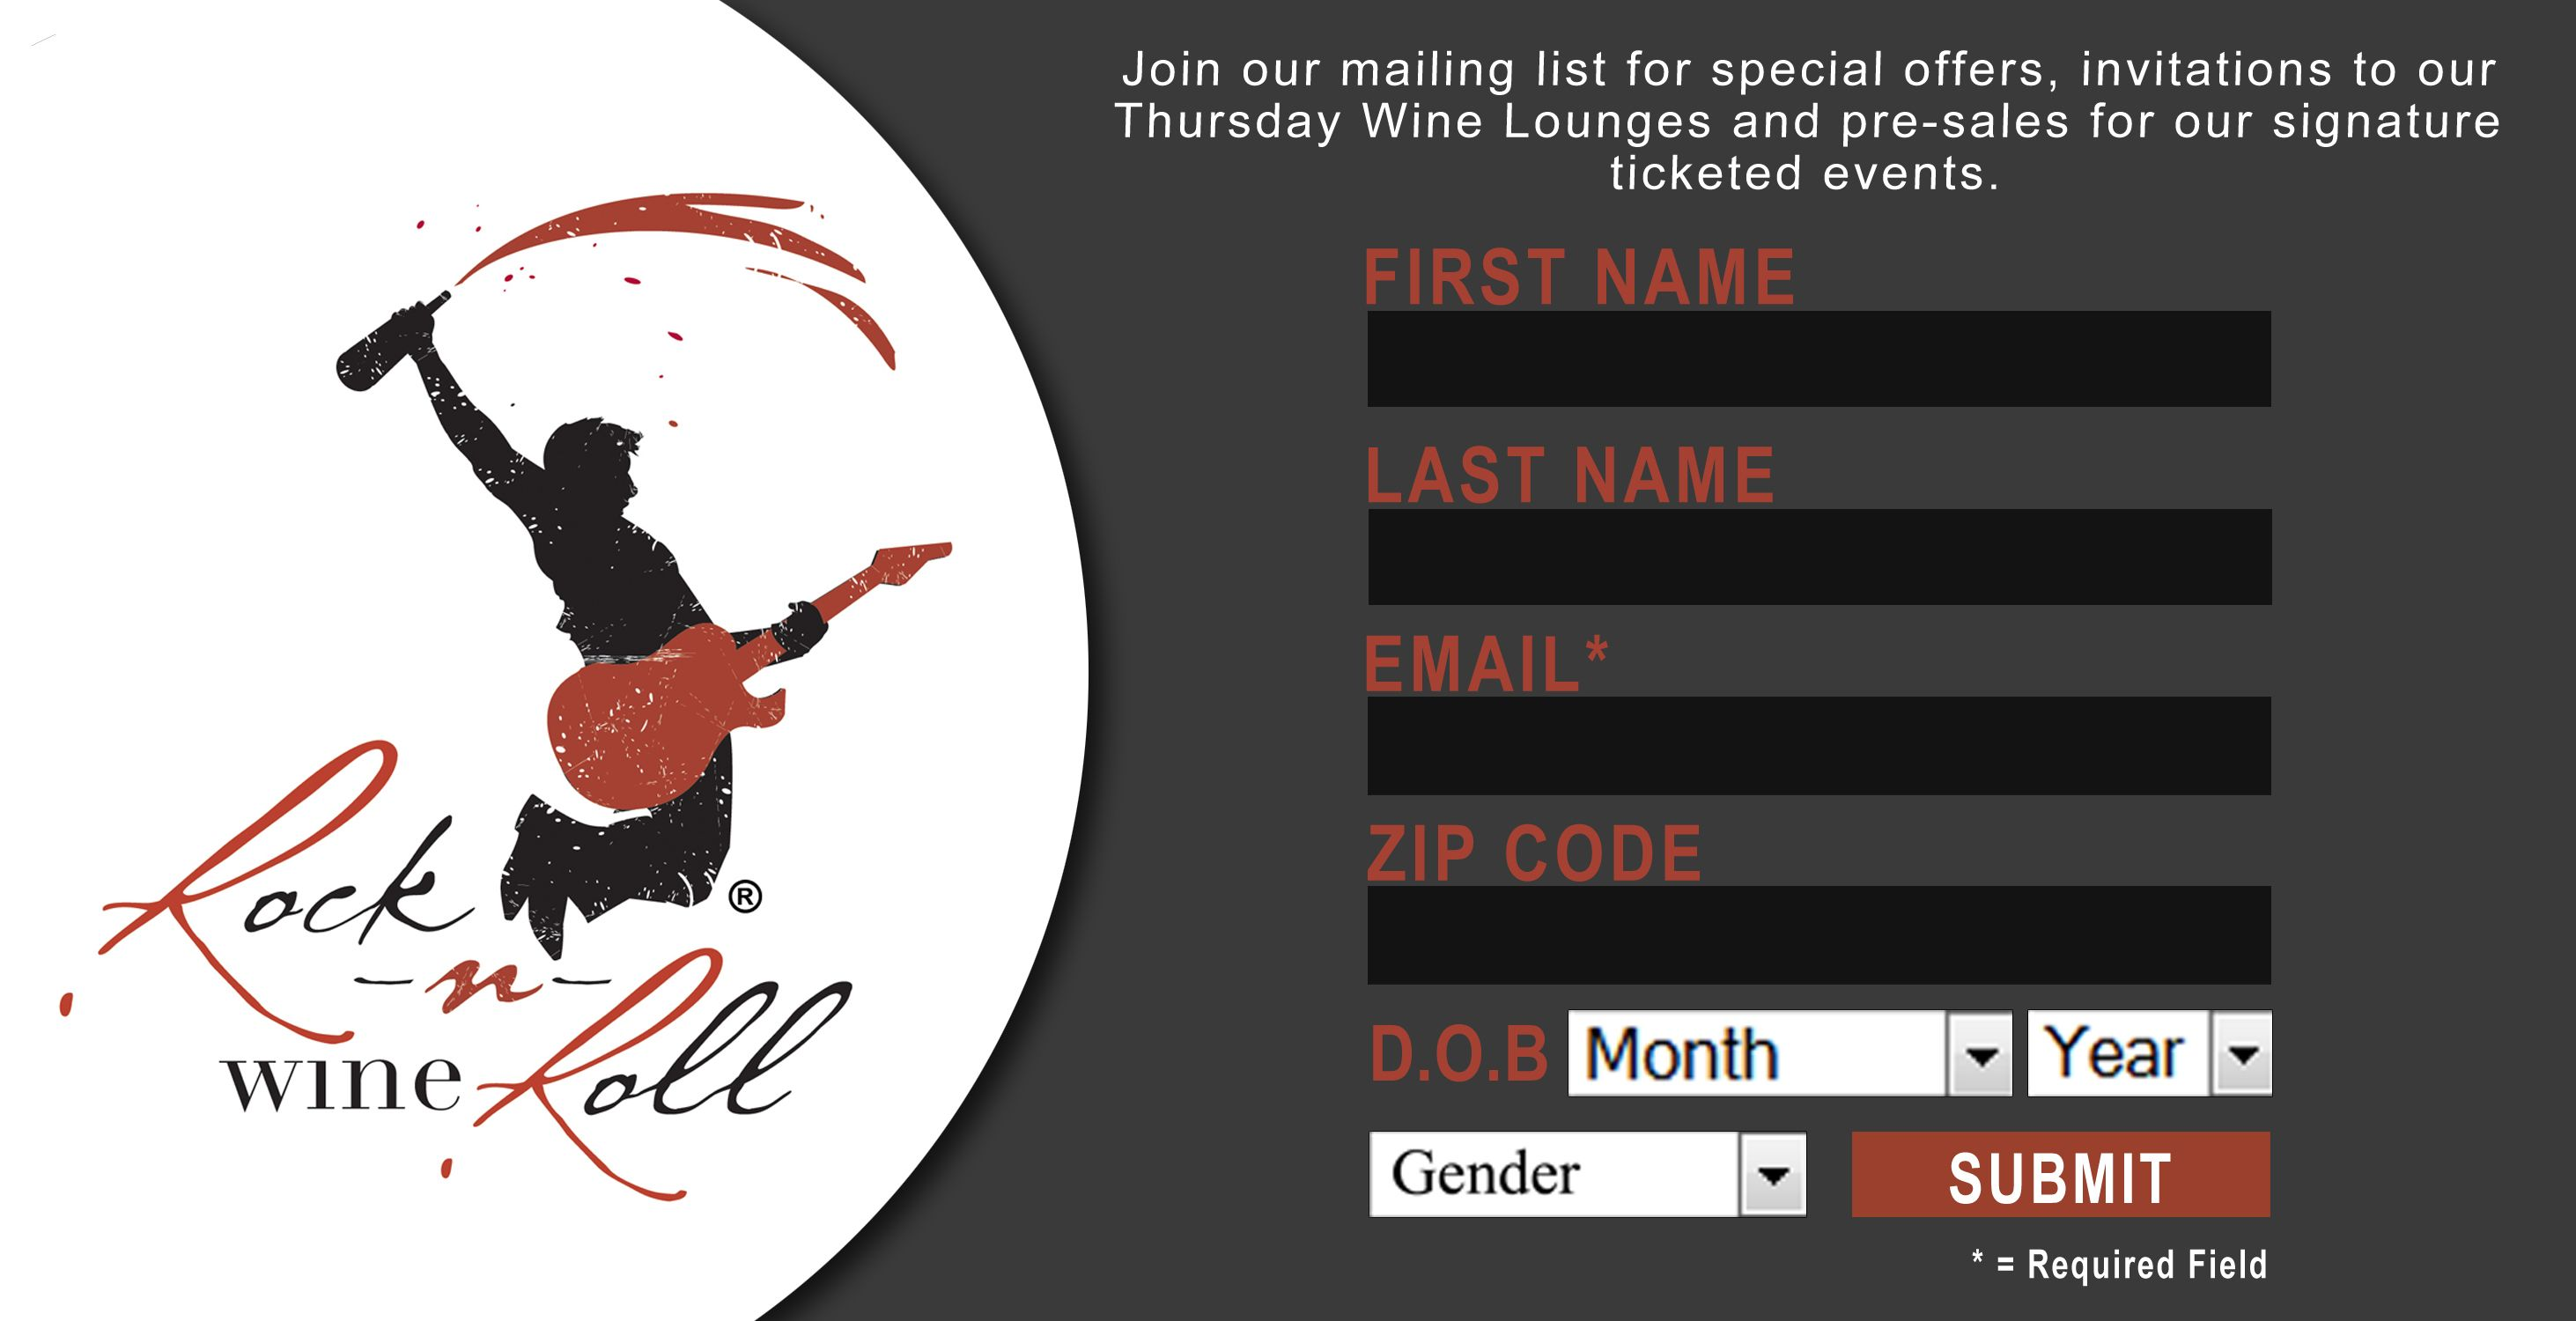 Beautiful sign up form for Rock n Roll Wine. #email www.icontact.com ...